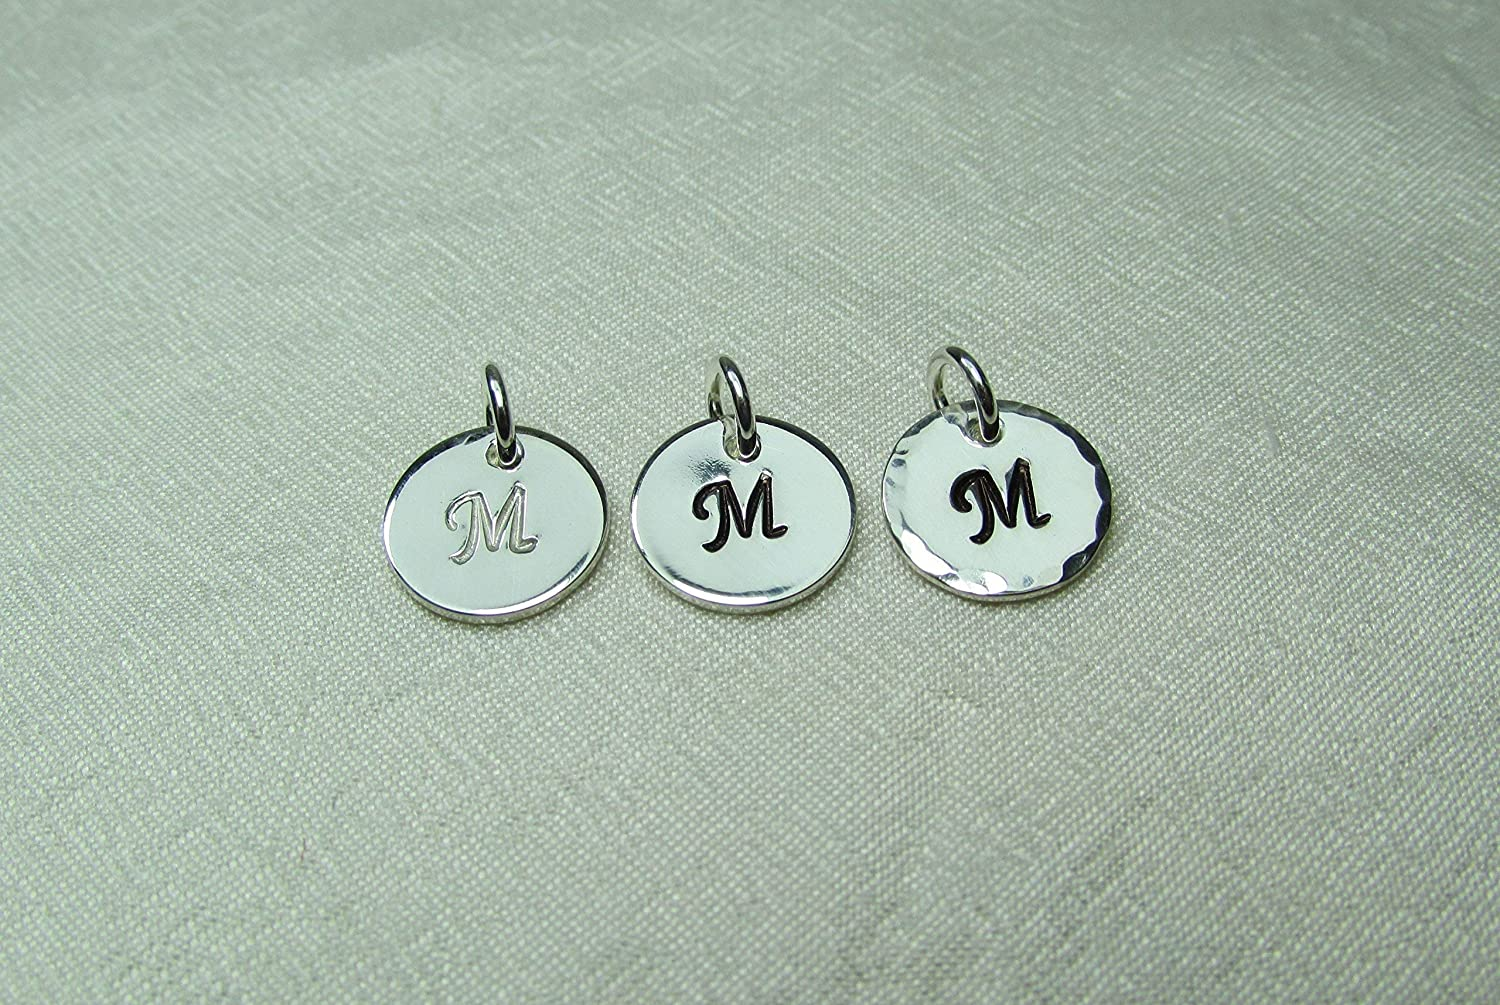 Bright Silver Tone 25mm Inner Diameter SALE 1 Pc Beautiful Alphabets Letters Initials Glass Image Charms Pendants